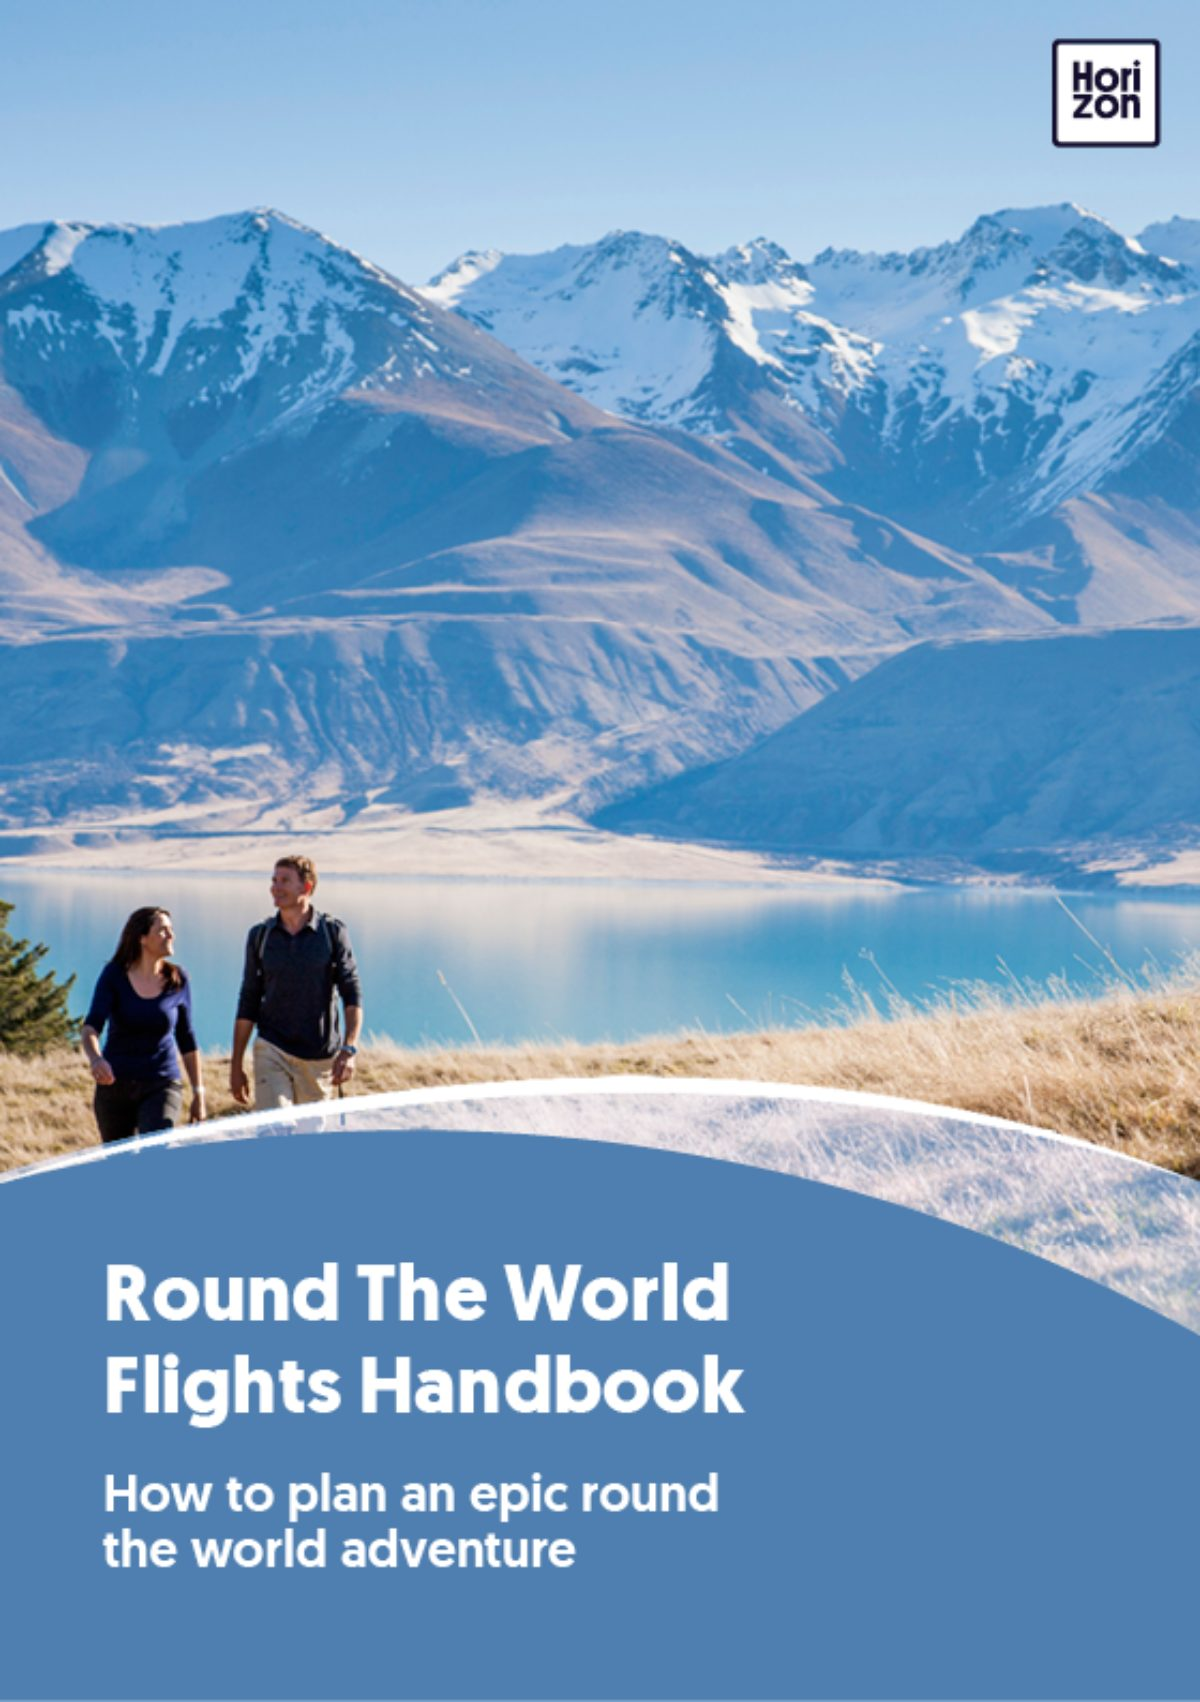 Round The World Flights Handbook